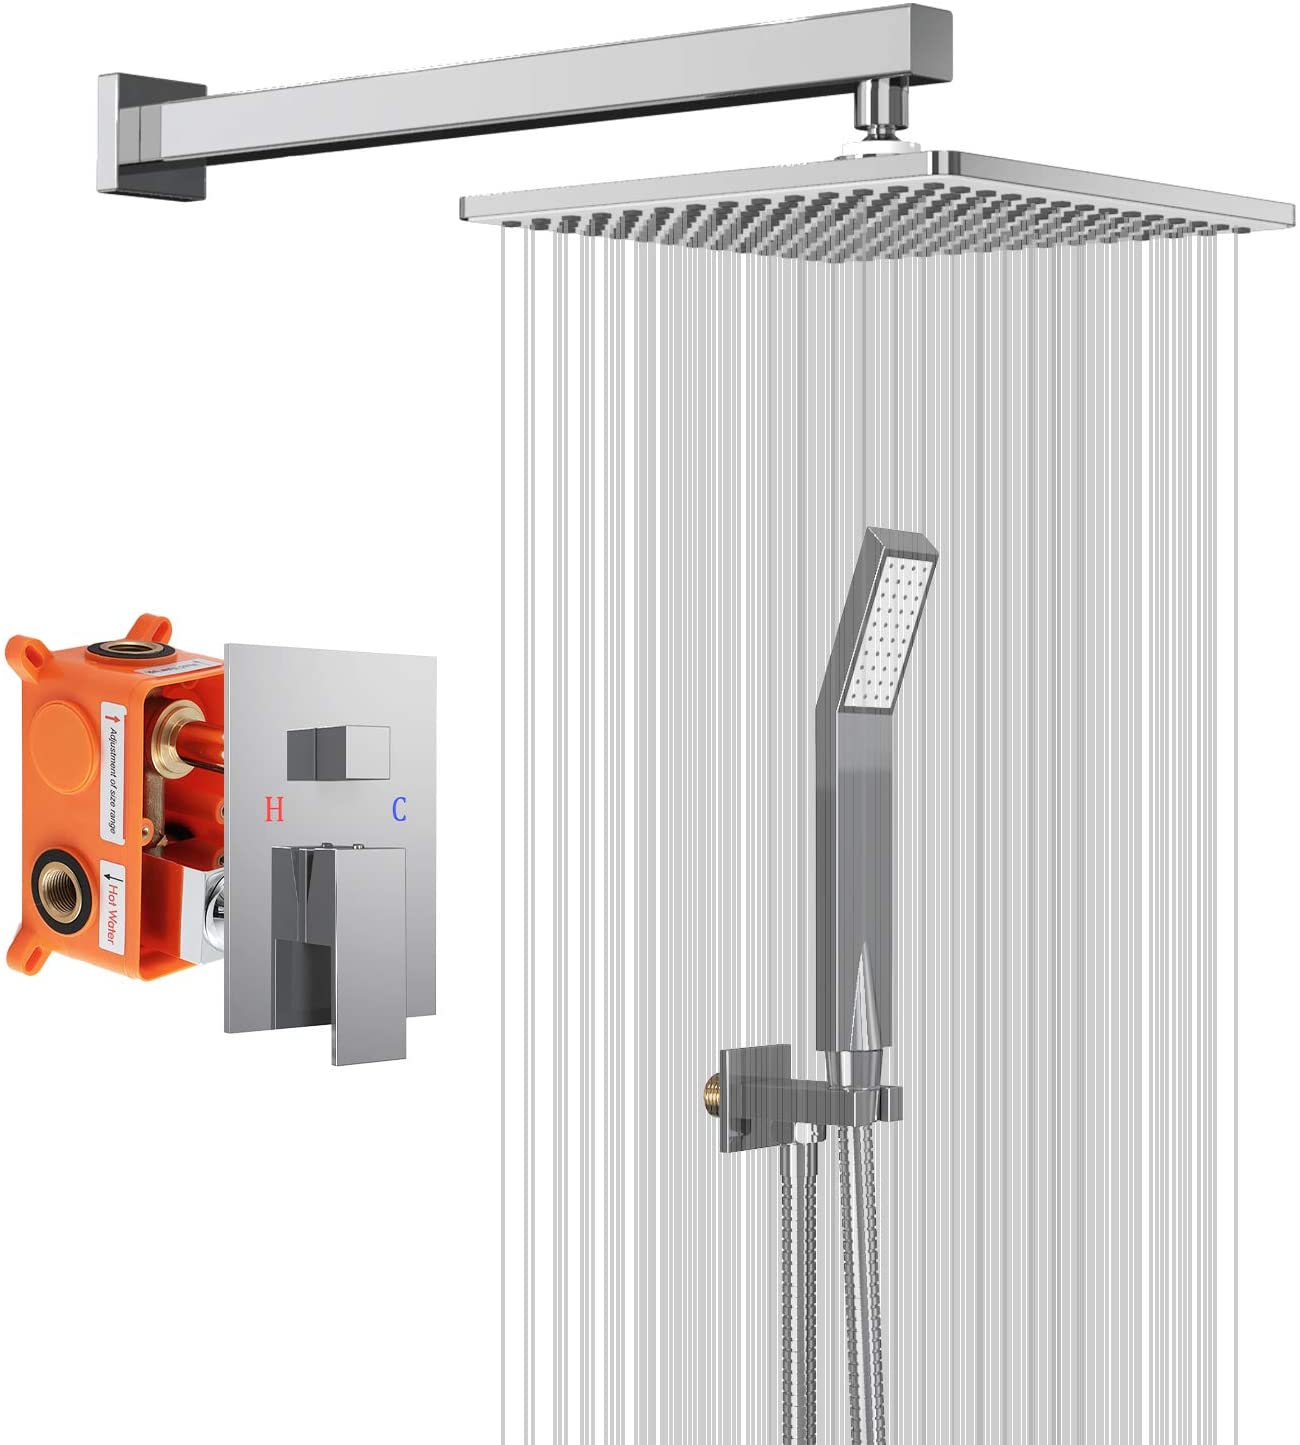 Shower System with Ceramic Spool 10 Inch,Chrome Coating Combo Set Brass Wall Mounted Rainfall Shower Head Systems with Rain Shower and Handheld Shower Faucet Rough-in Valve Body and Trim Included…